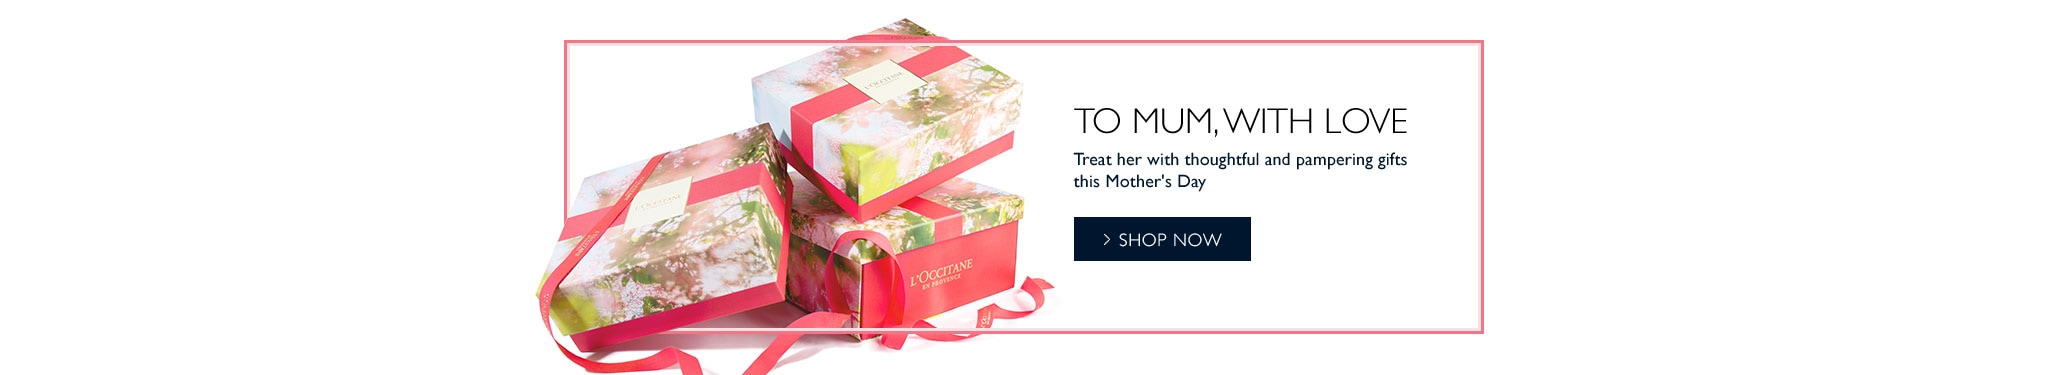 Shop Online Mother's Day Gifts